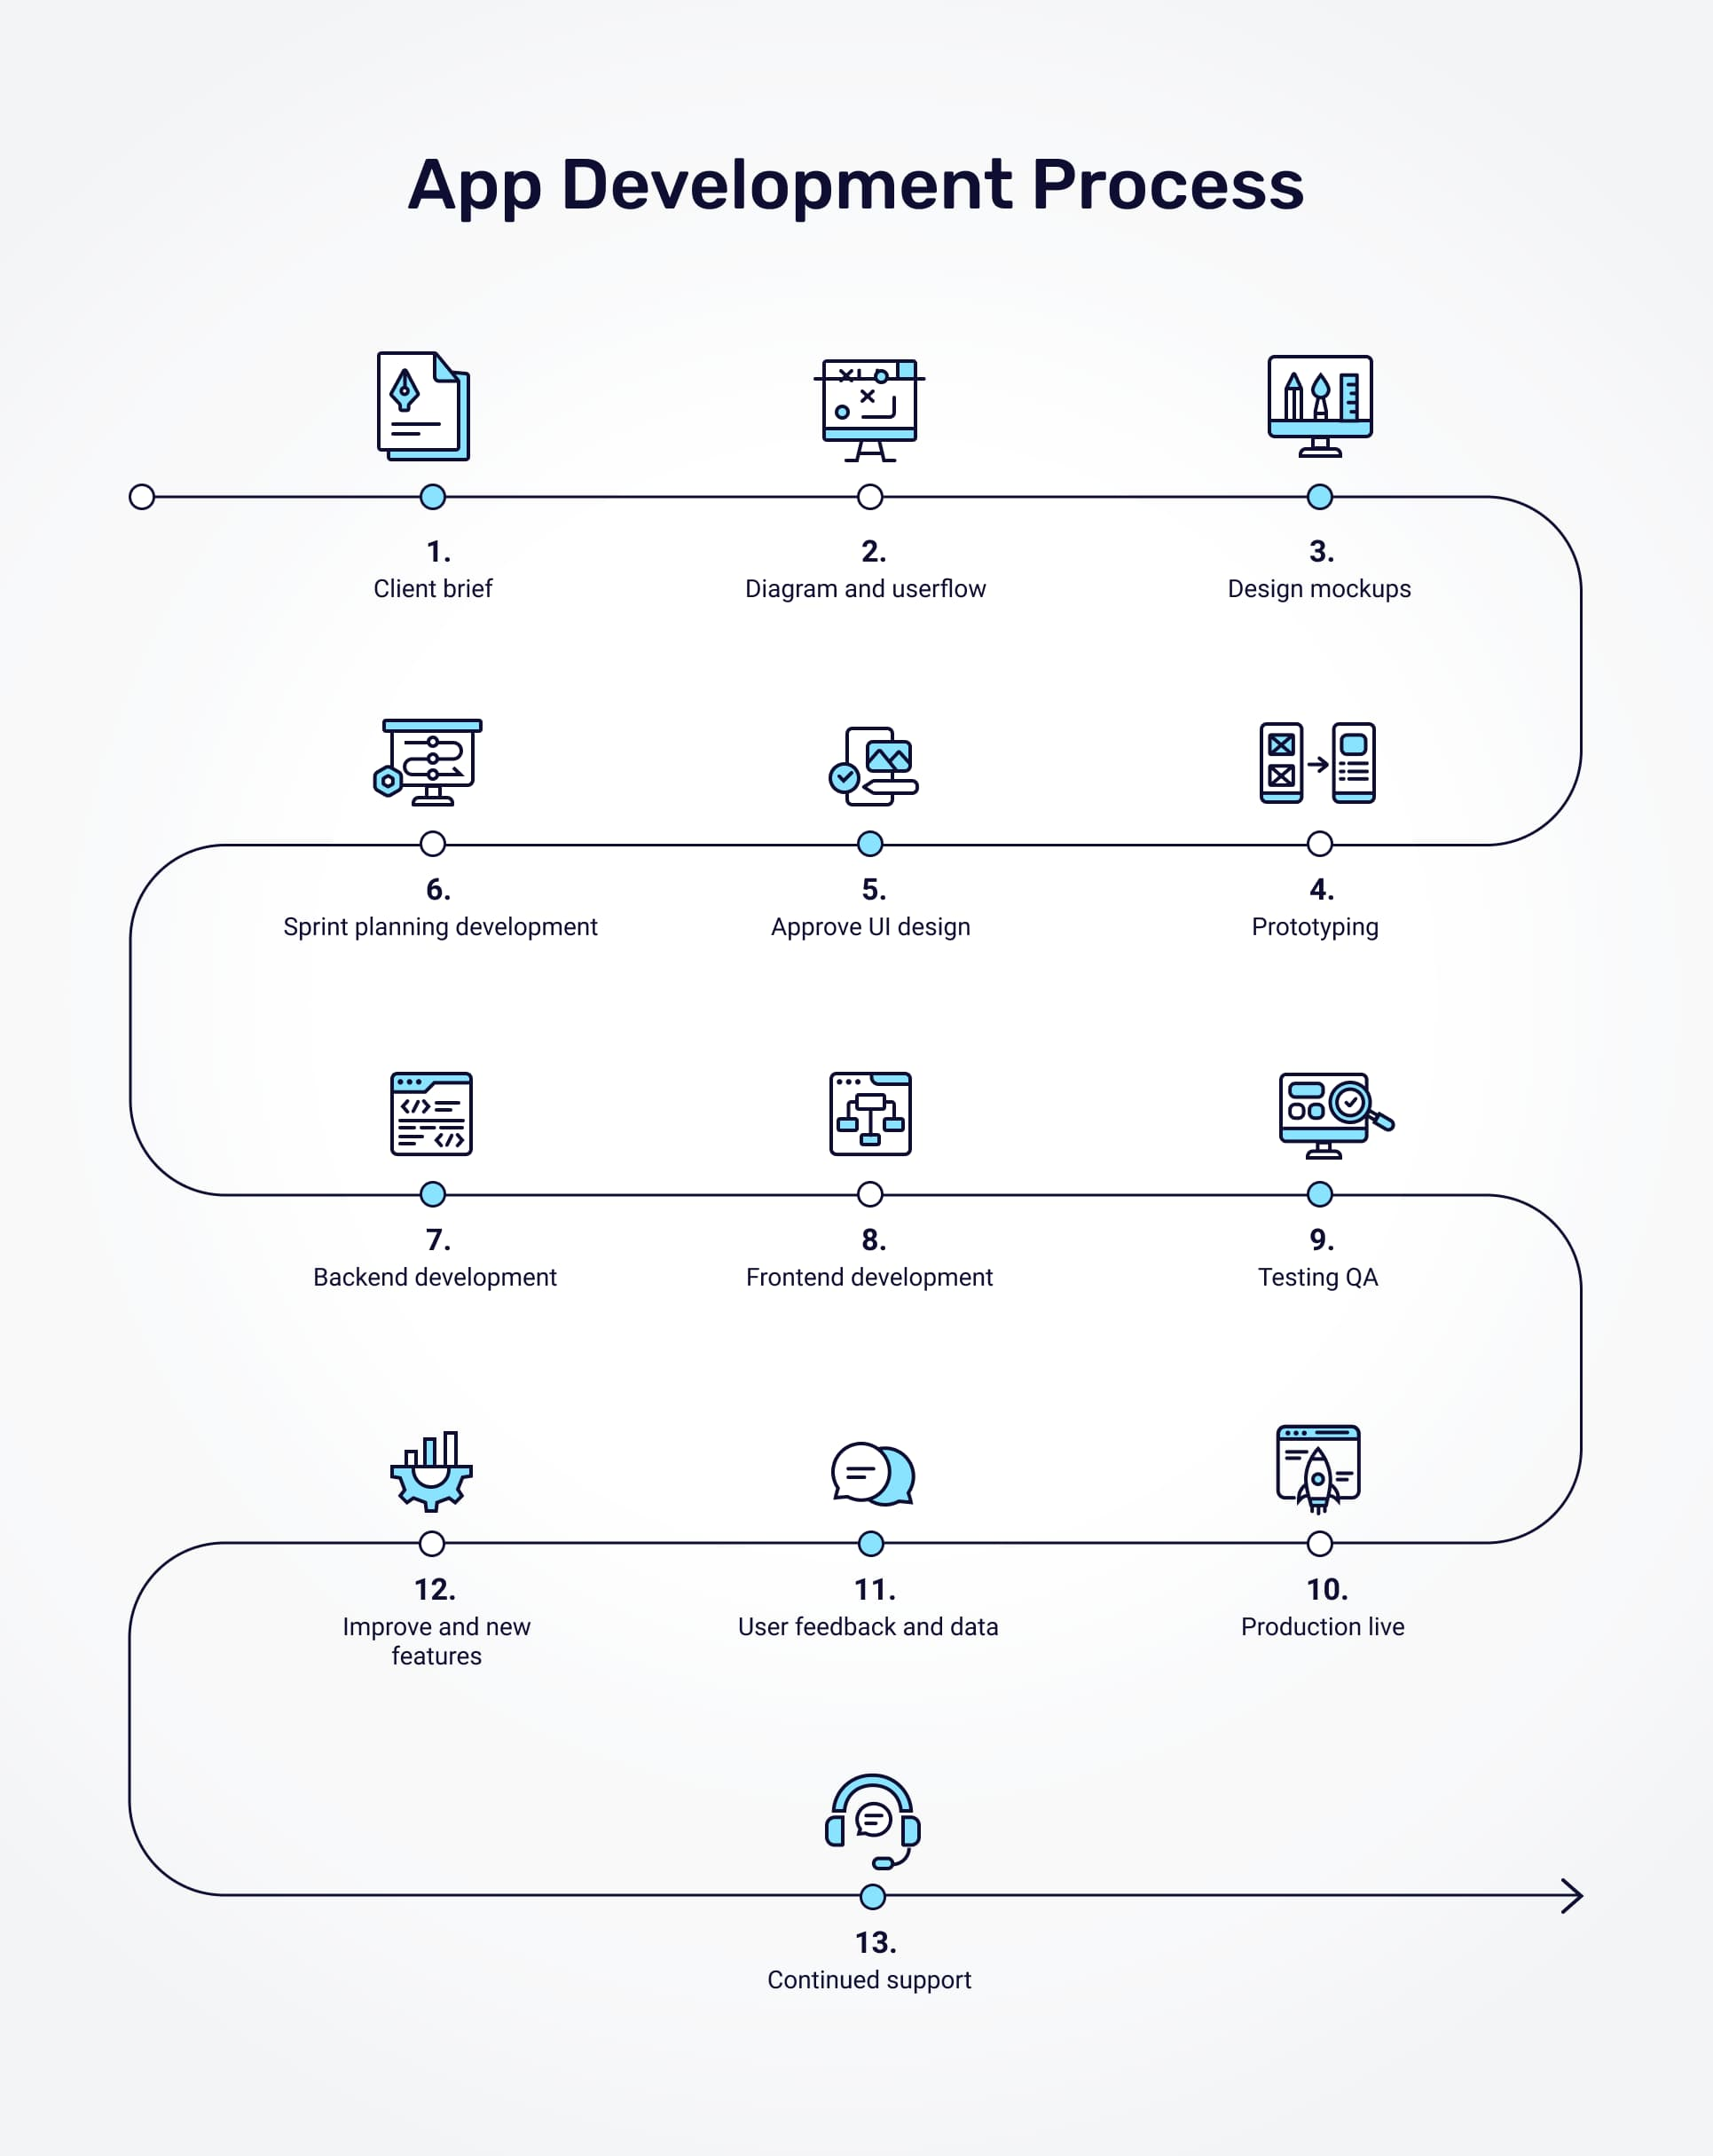 appello software's app development process flowchart